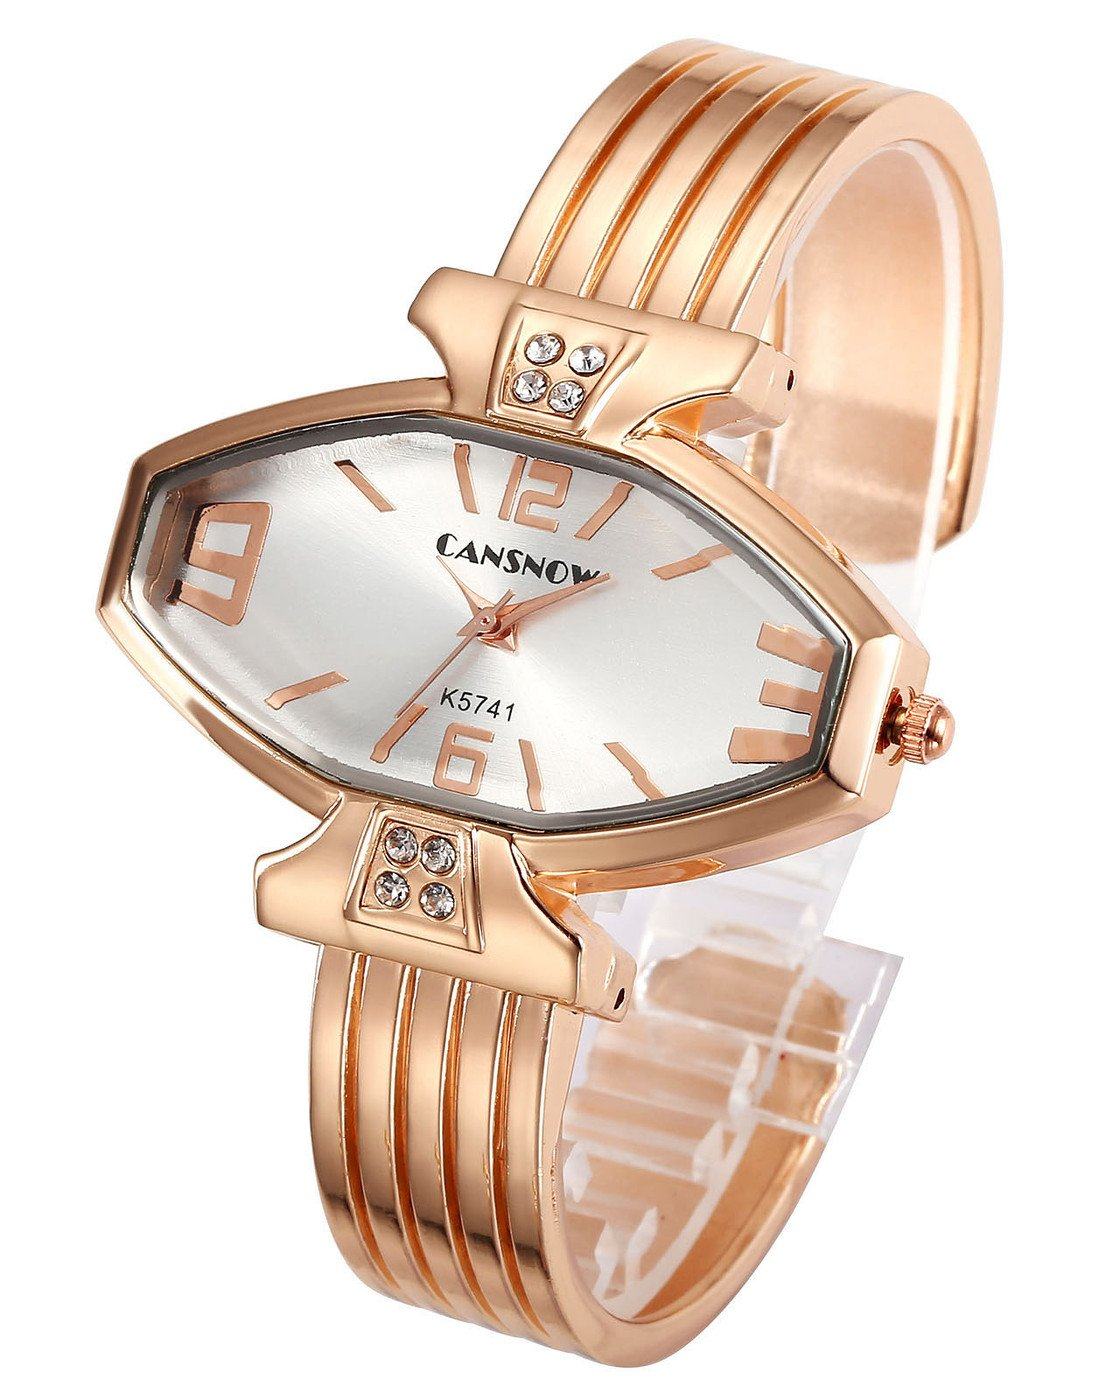 Top Plaza Women Ladies Casual Luxury Gold Rose Gold Tone Alloy Analog Quartz Bracelet Watch Rhombus Dial Rhinestones Decorated Elegant Dress Bangle Cuff Wristwatch-Rose Gold Case Silver Dial